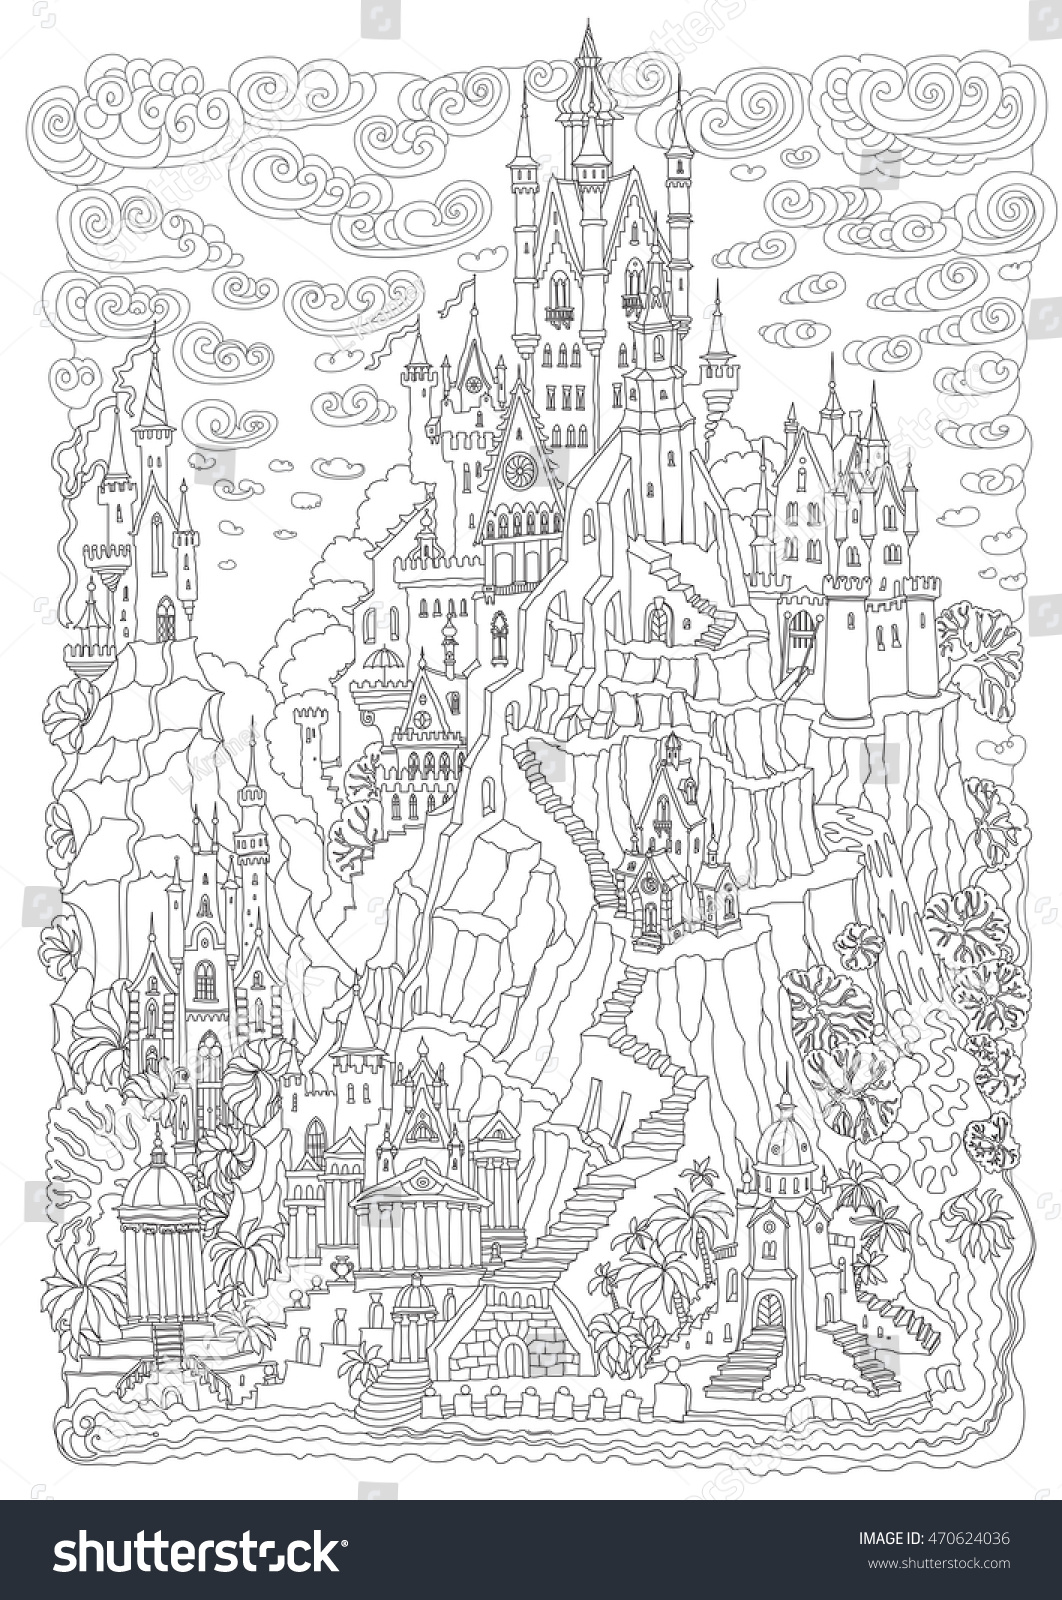 shirt tales coloring pages - photo#36